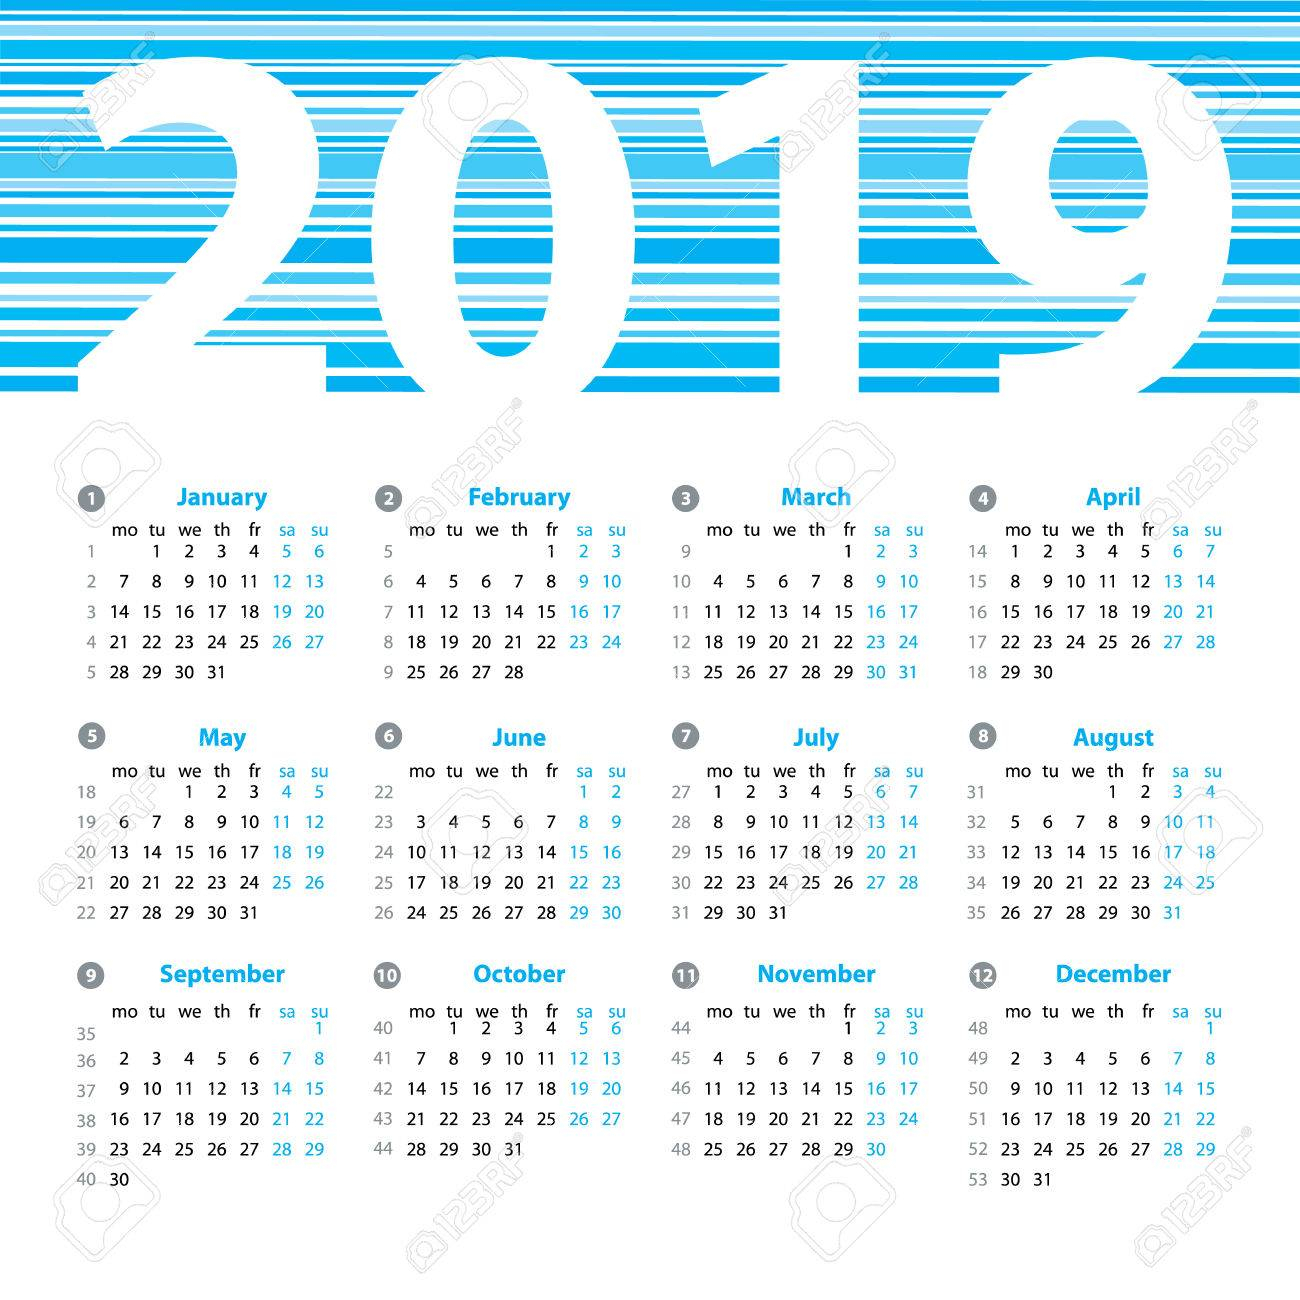 Calendar 2019 Year Vector Design Template With Week Numbers And..